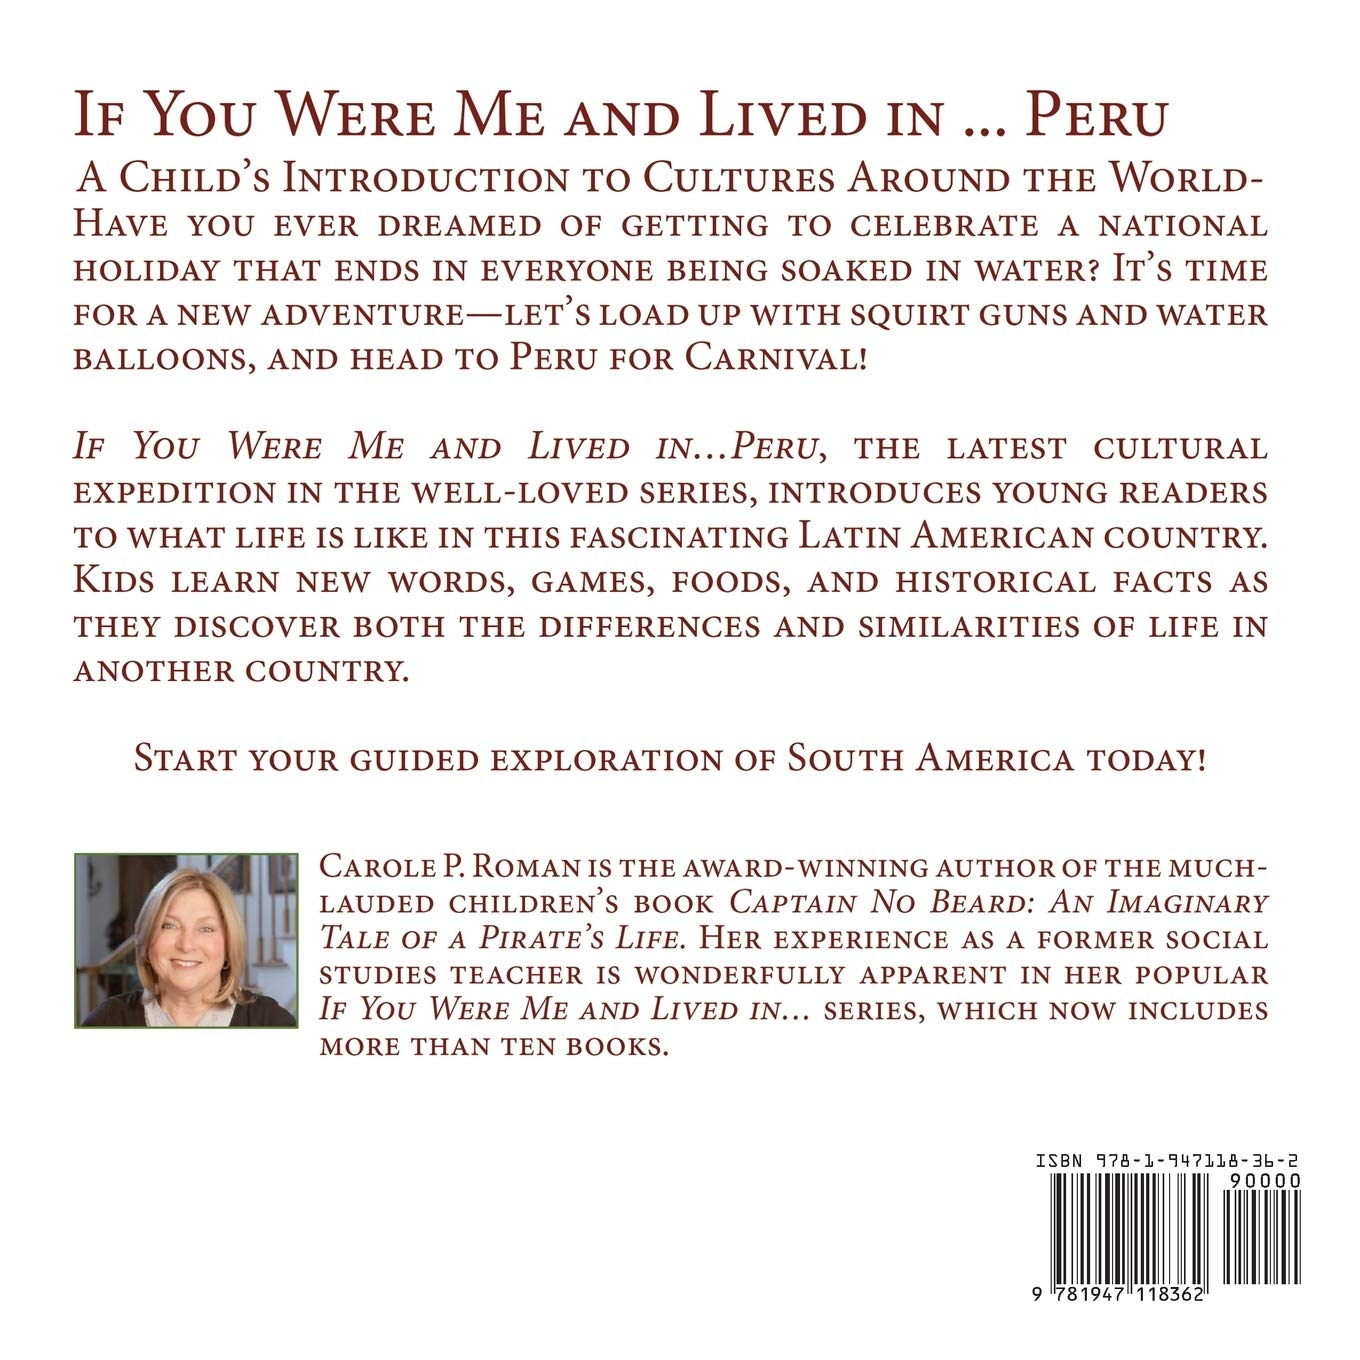 If You Were Me And Lived In Peru A Child S Introduction To Cultures Around The World If You Were Me And Lived In Cultural Roman Carole P Wierenga Kelsea 9781947118362 Amazon Com Books